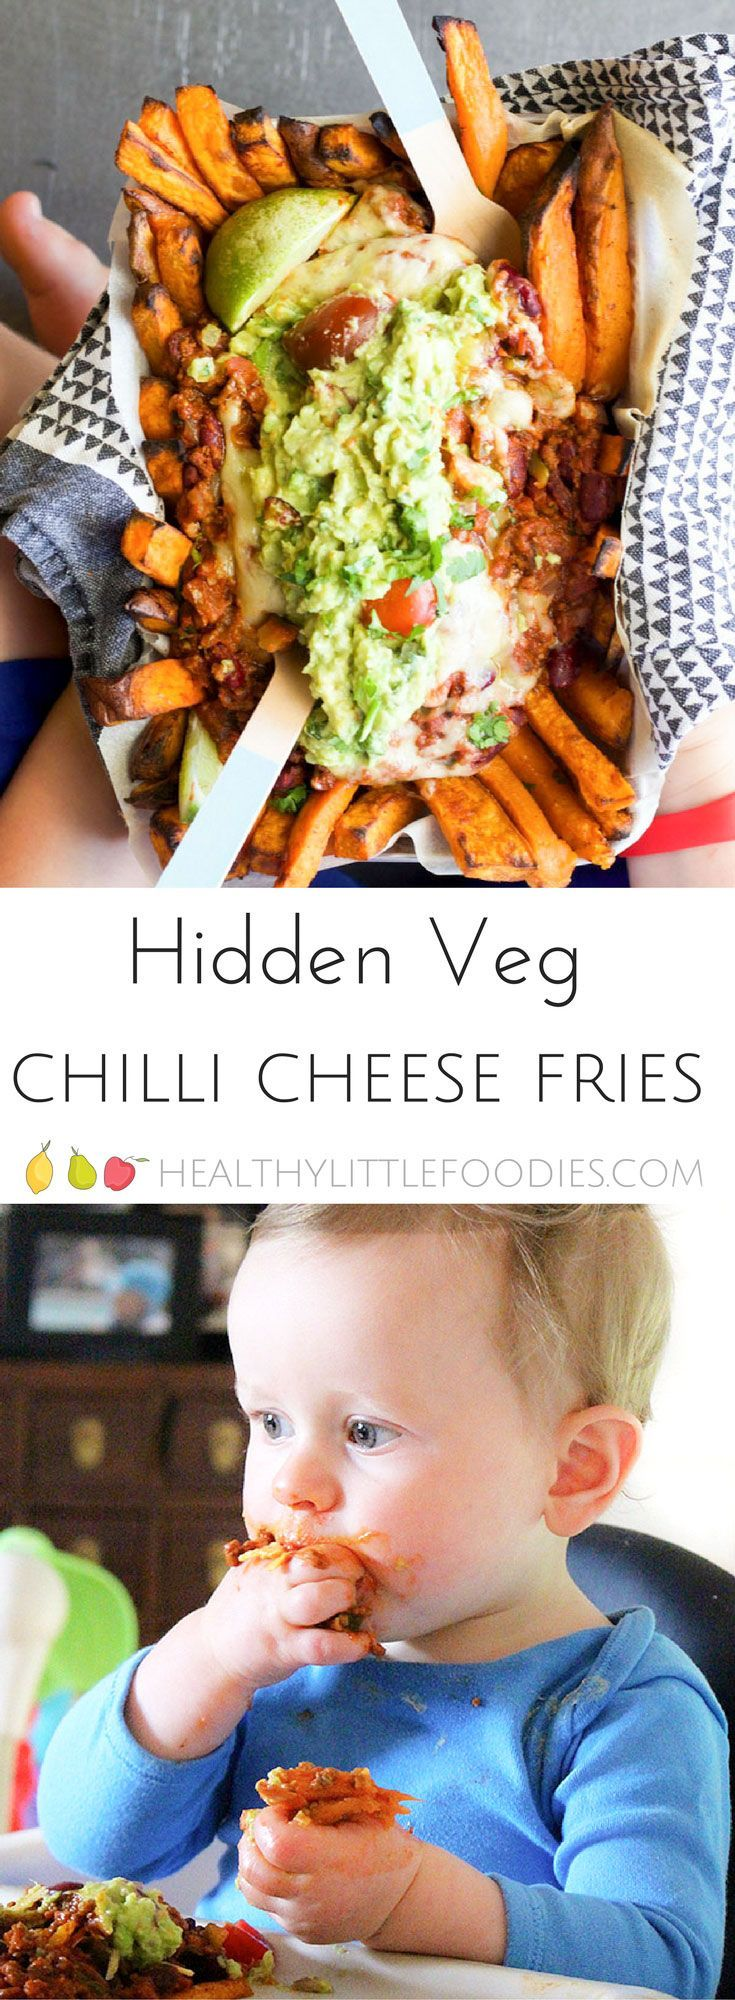 These healthy chilli cheese fries are packed with 7 different veggies. Great for fussy eaters #hiddenveg #kidsfood #blw #babyledweaning #fries via @hlittlefoodies